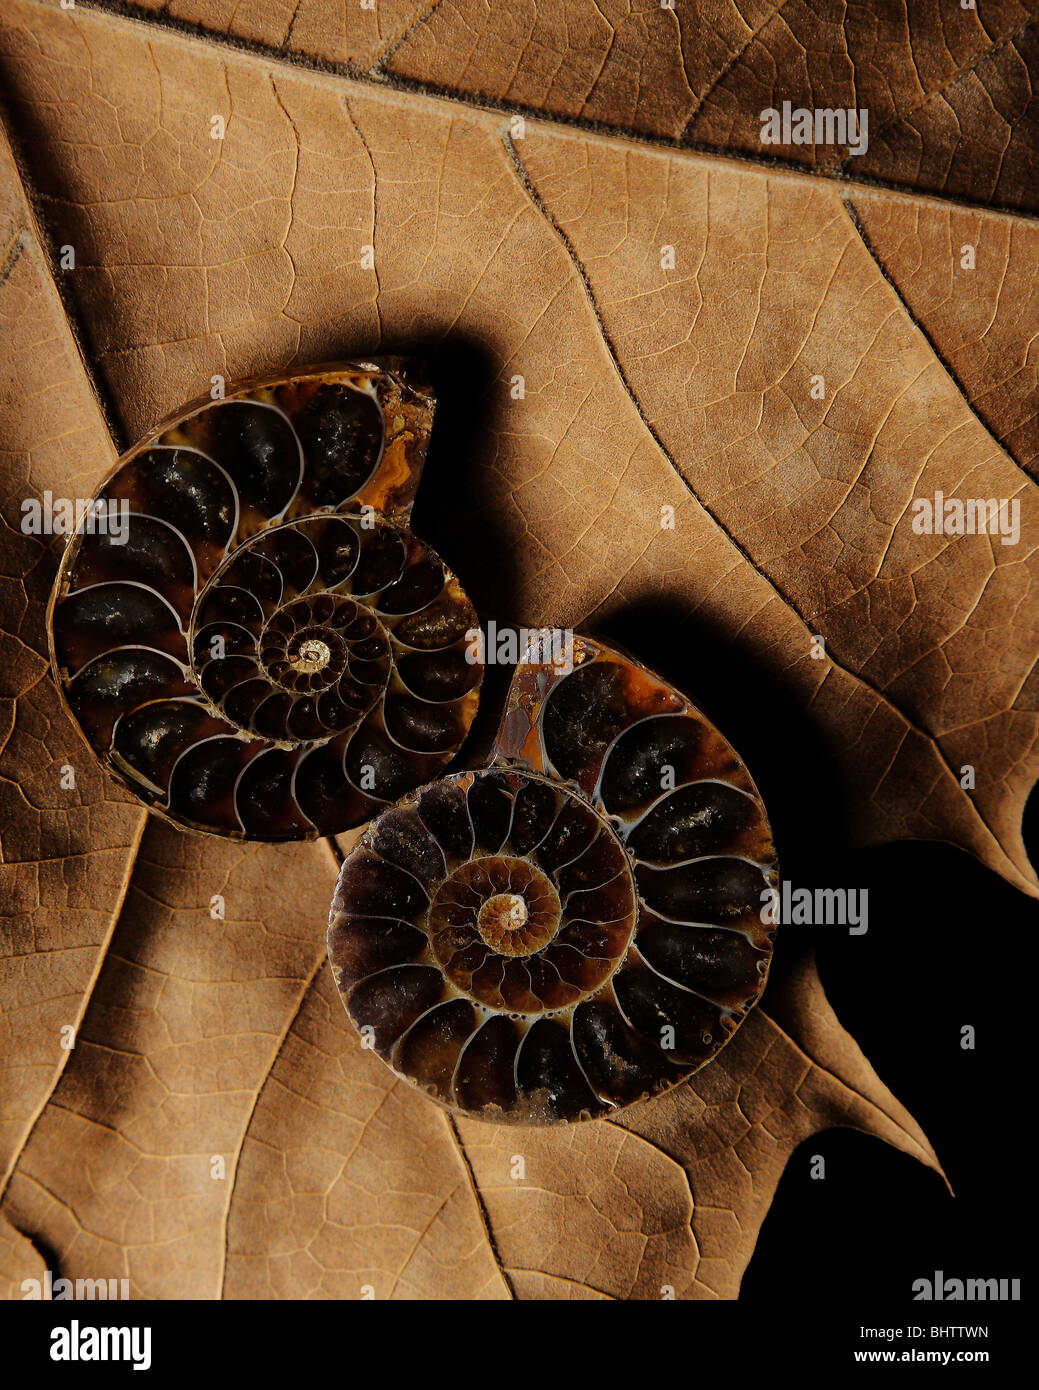 Stock photo of artistically arranged elements of nature. The articles are brown tones and consist of two spiral - Stock Image